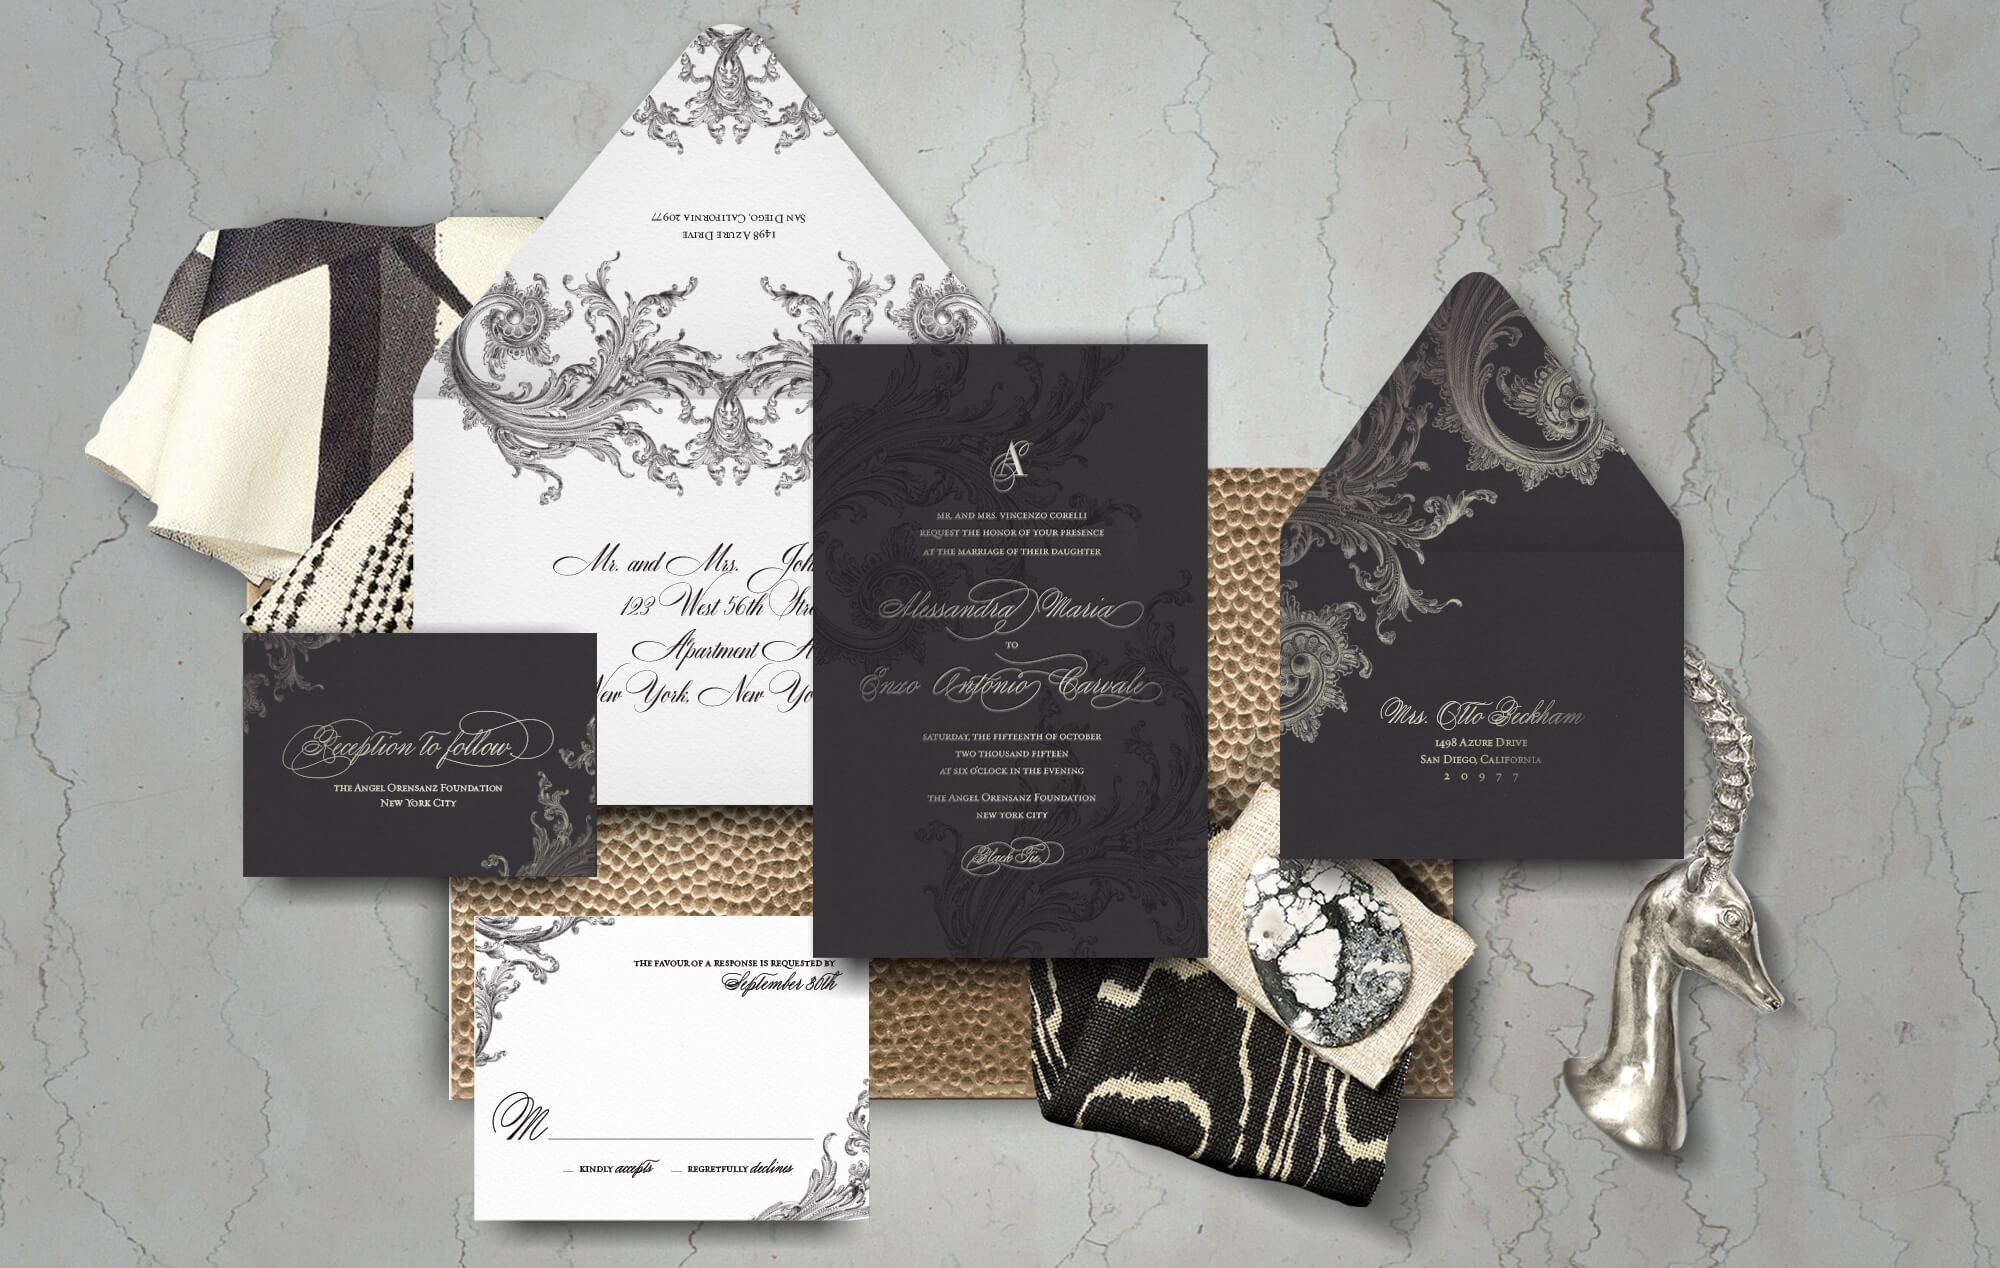 Black and silver scrollwork wedding invitation